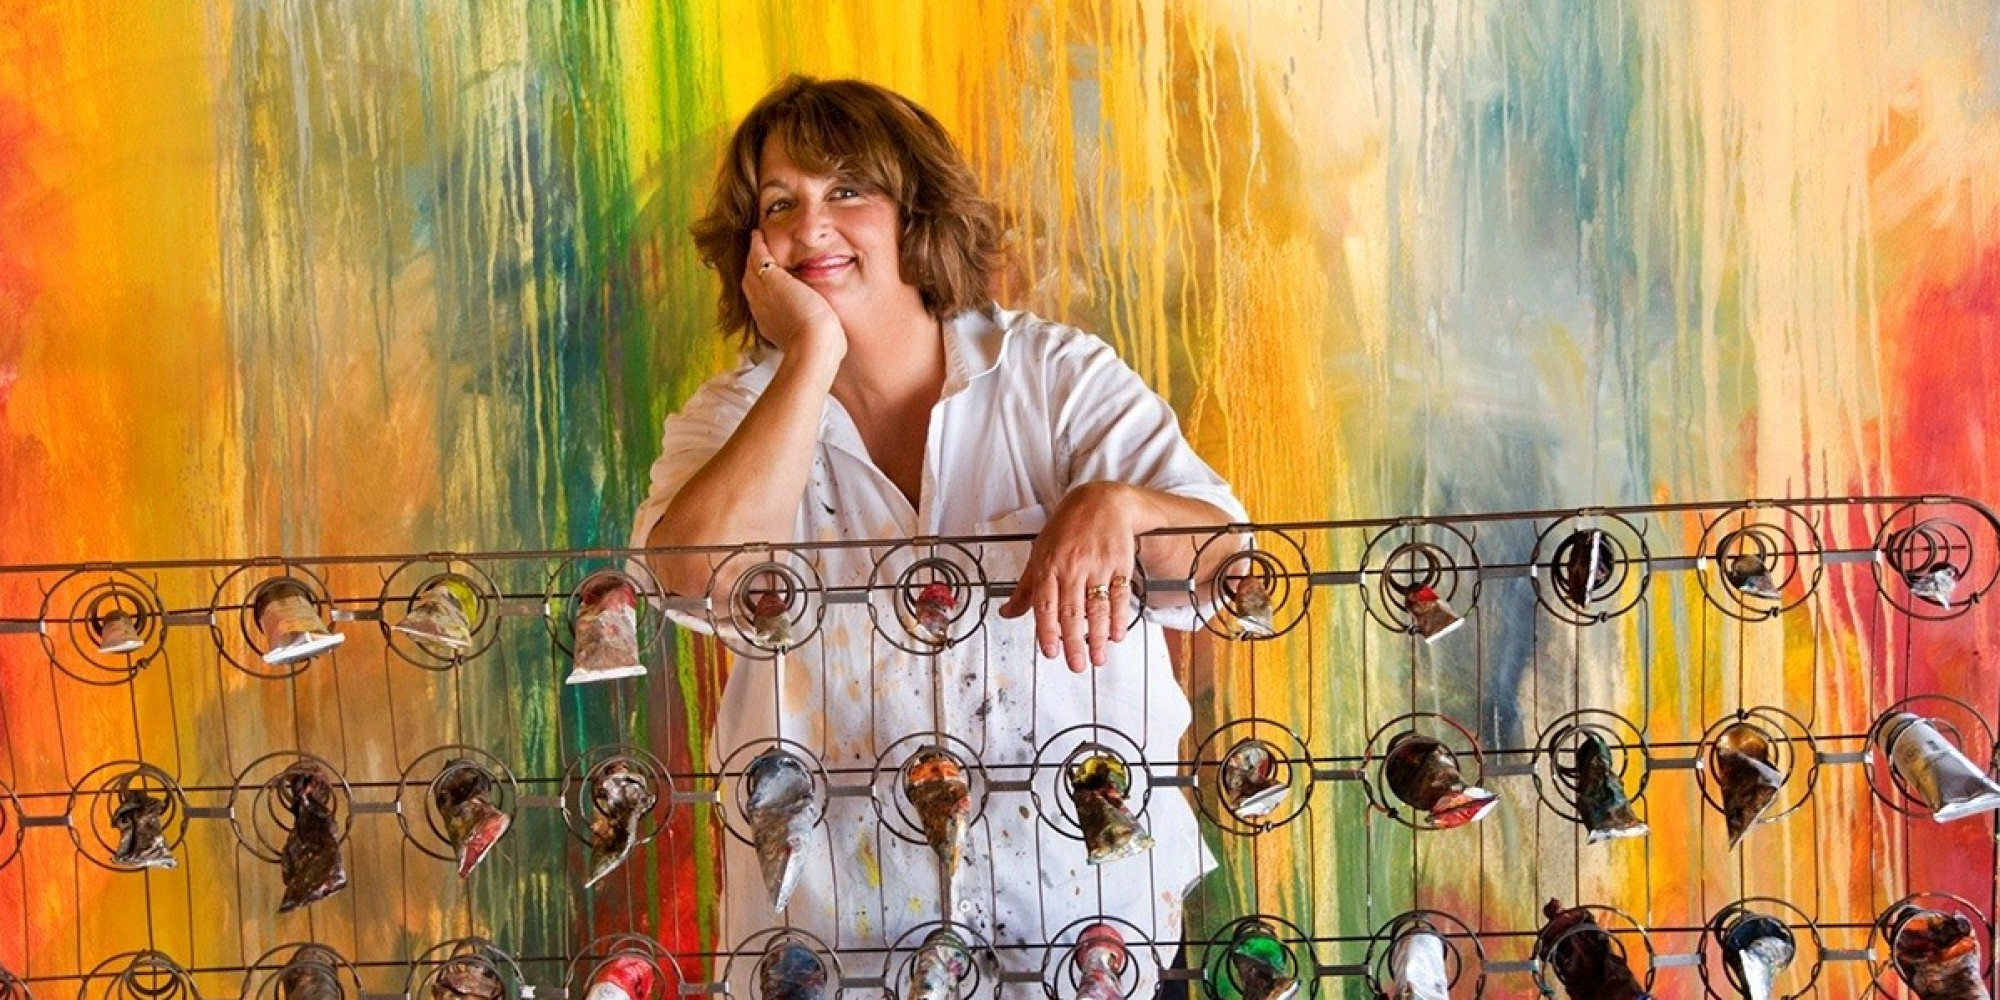 This Teacher Quit Her Job To Pursue Painting - Now Her Pieces Sell for $100,000